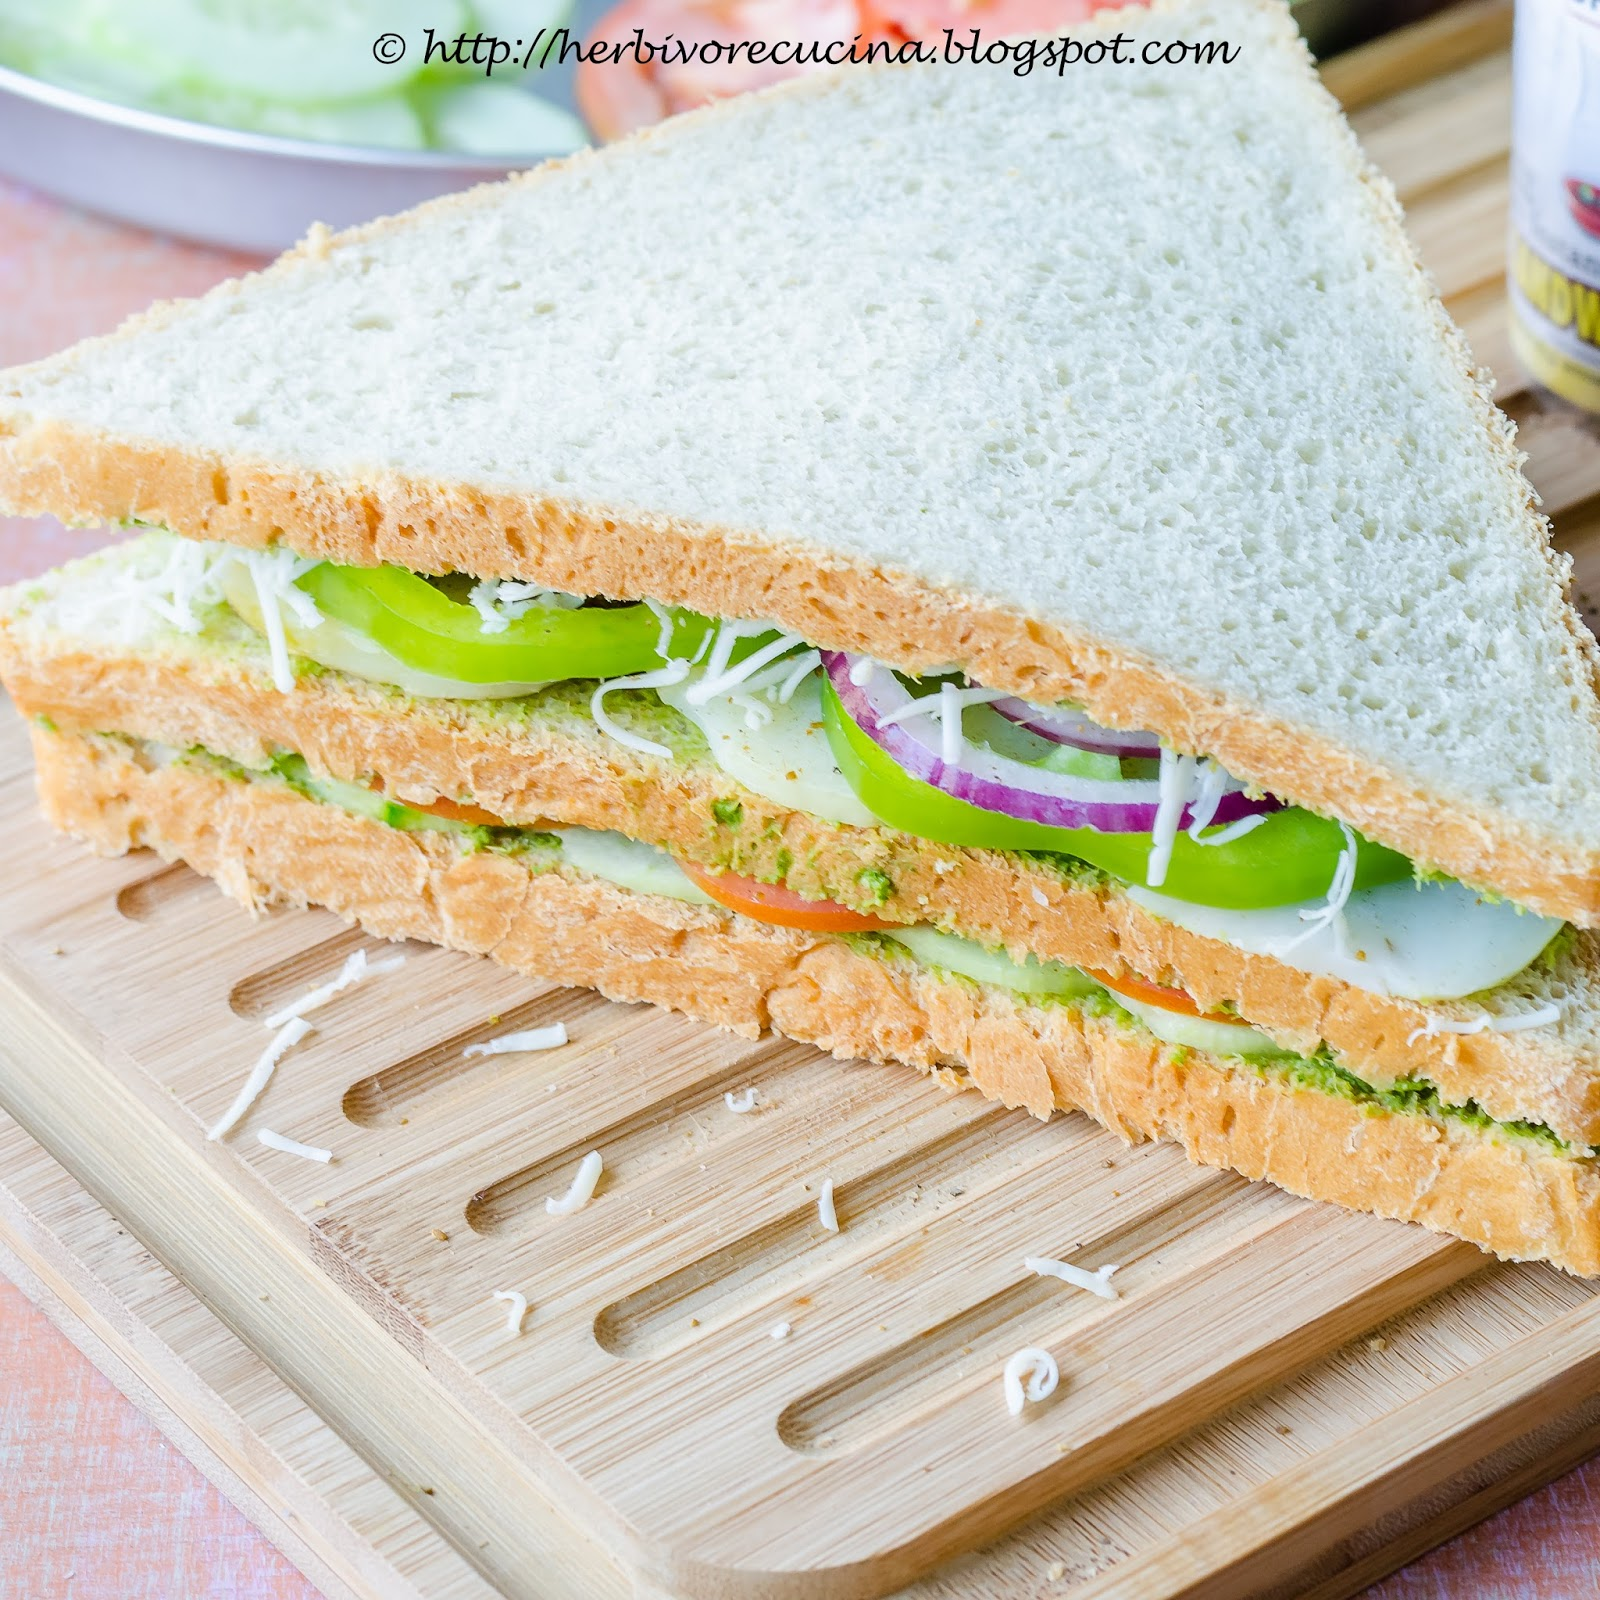 toast the sandwich with butter. Slice and serve with cilantro chutney ...